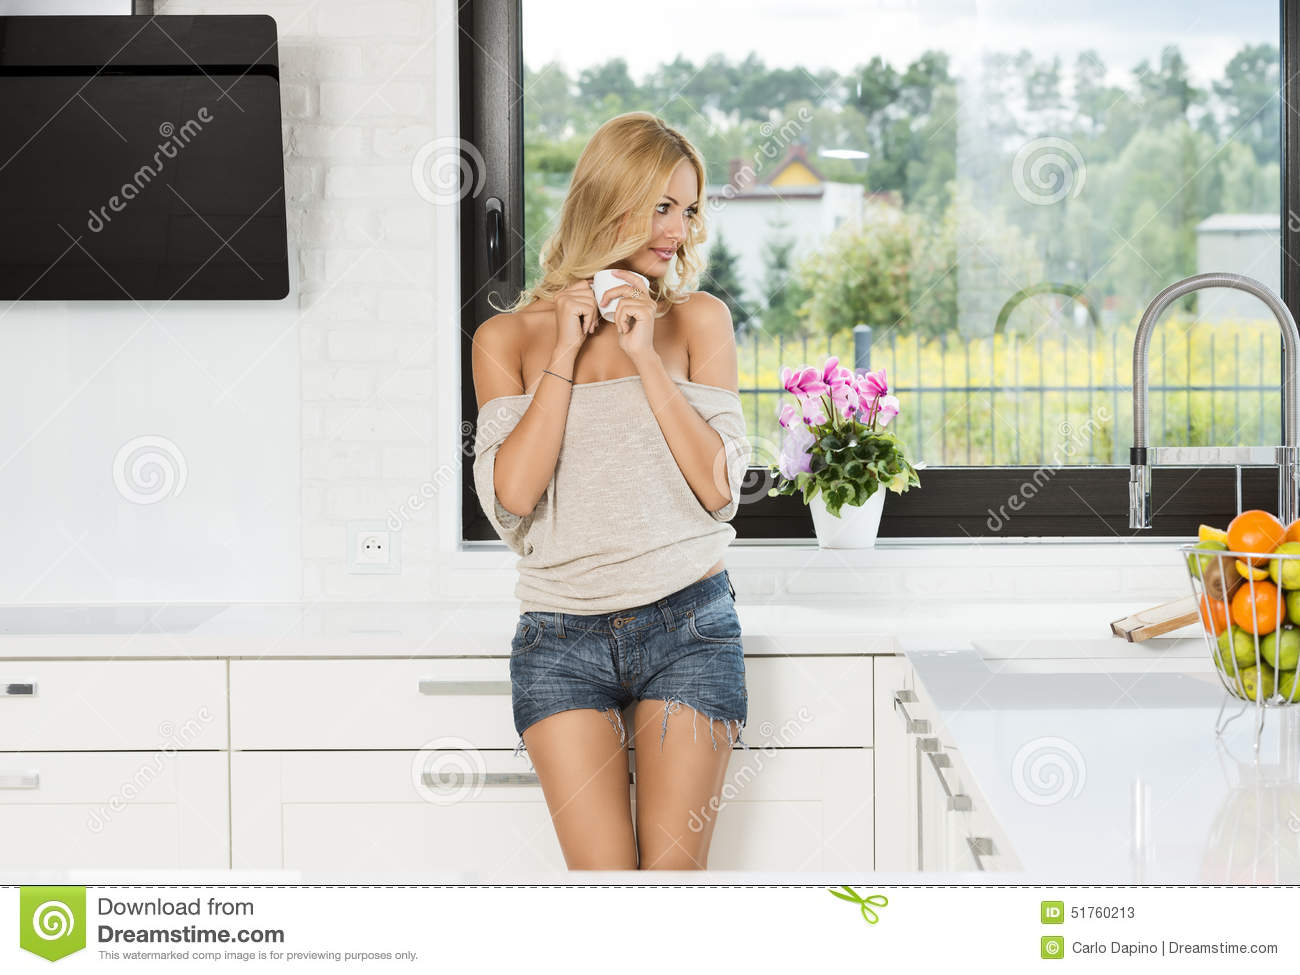 Informal Girl , Drinking Coffee In Kitchen Stock Image - Image of ...